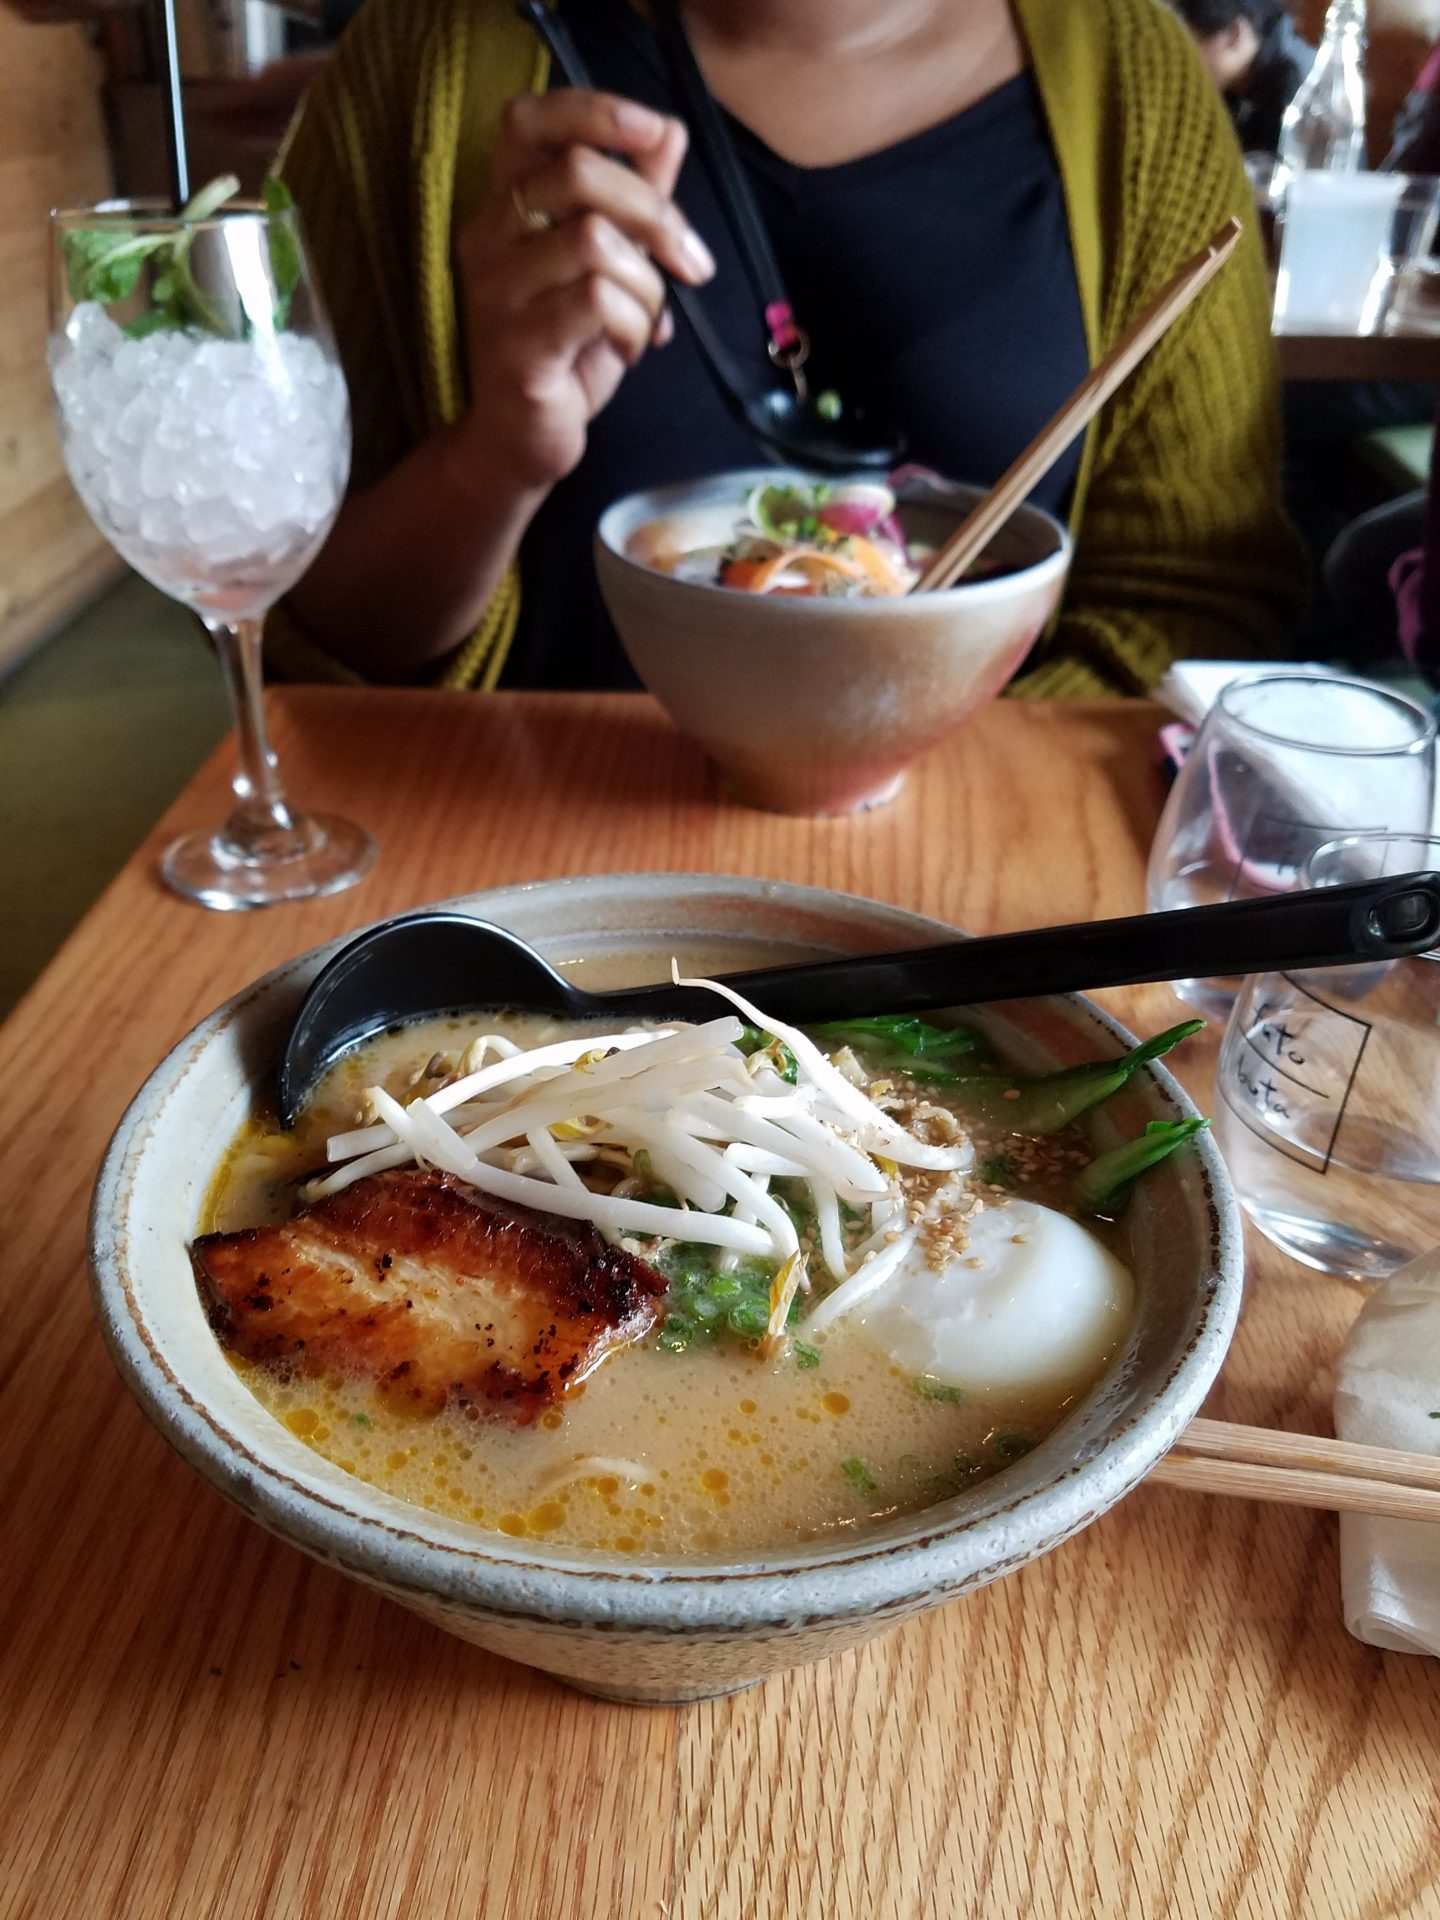 Futo Buta is one of the Best Restaurants in Charlotte for Ramen Noodles